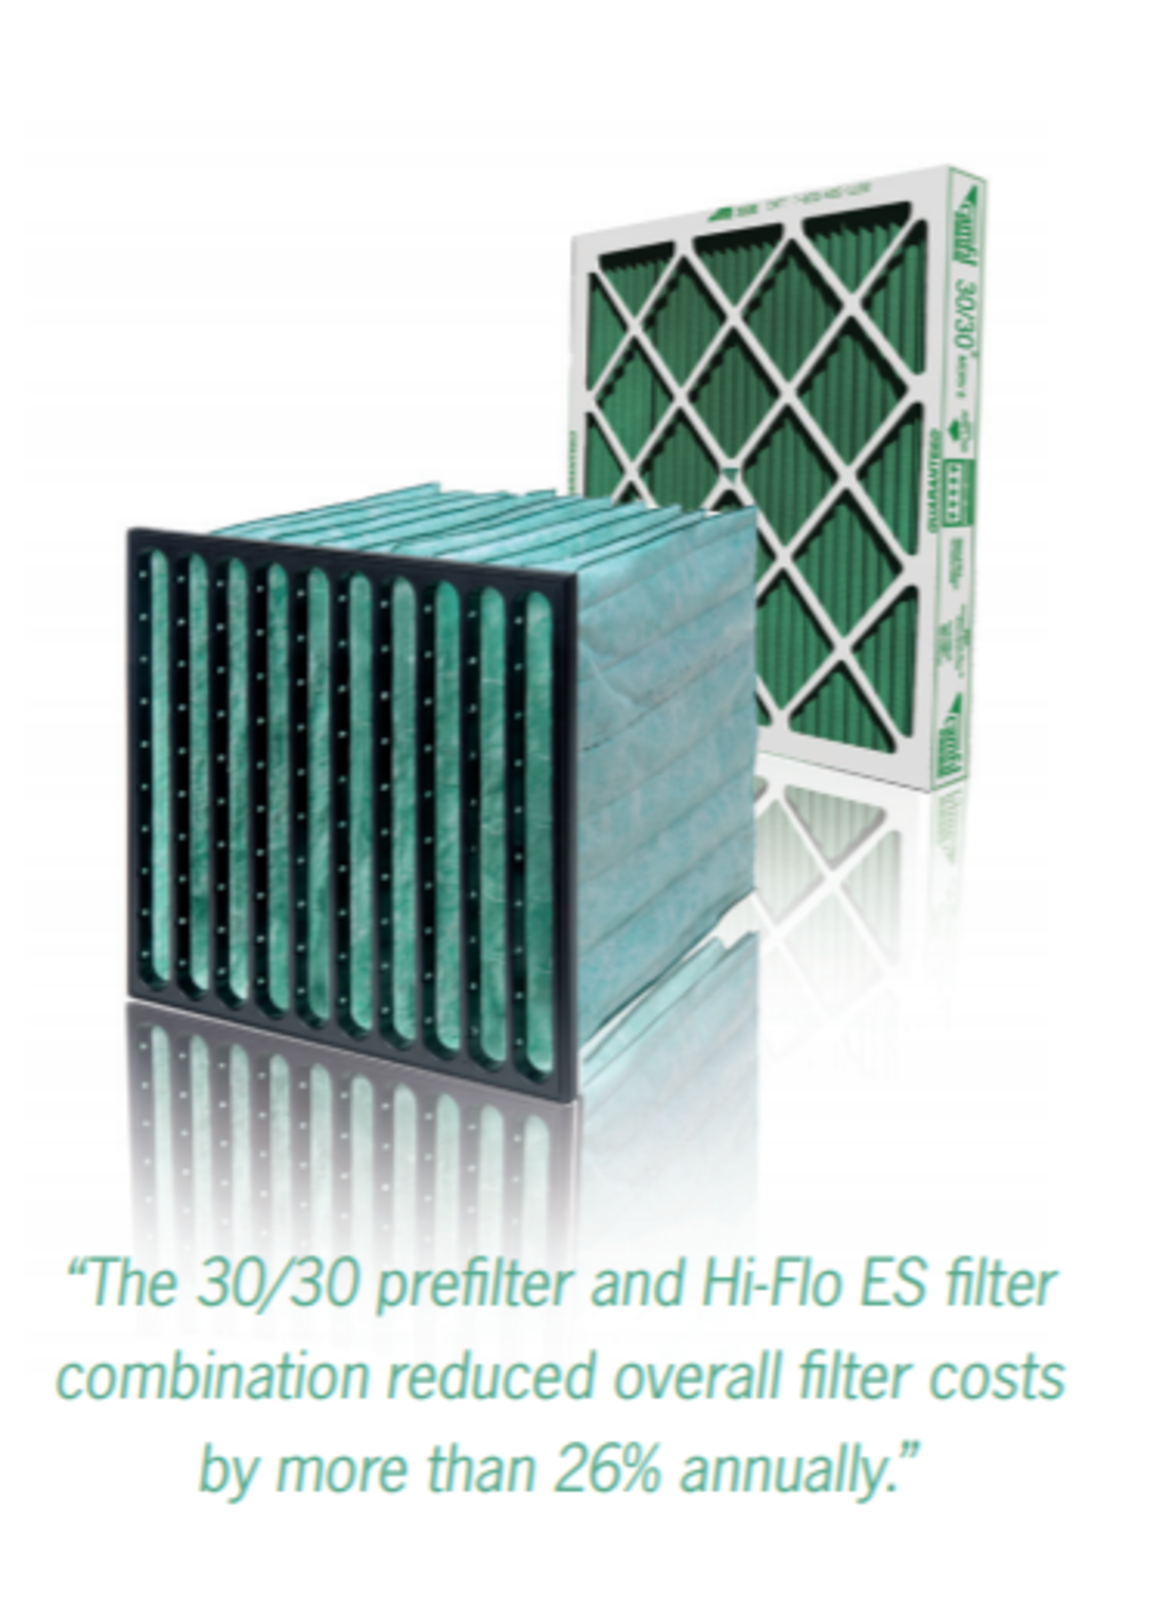 Camfil Filters Provide Significant Energy Savings for a Leading American Frozen Food Manufacturer